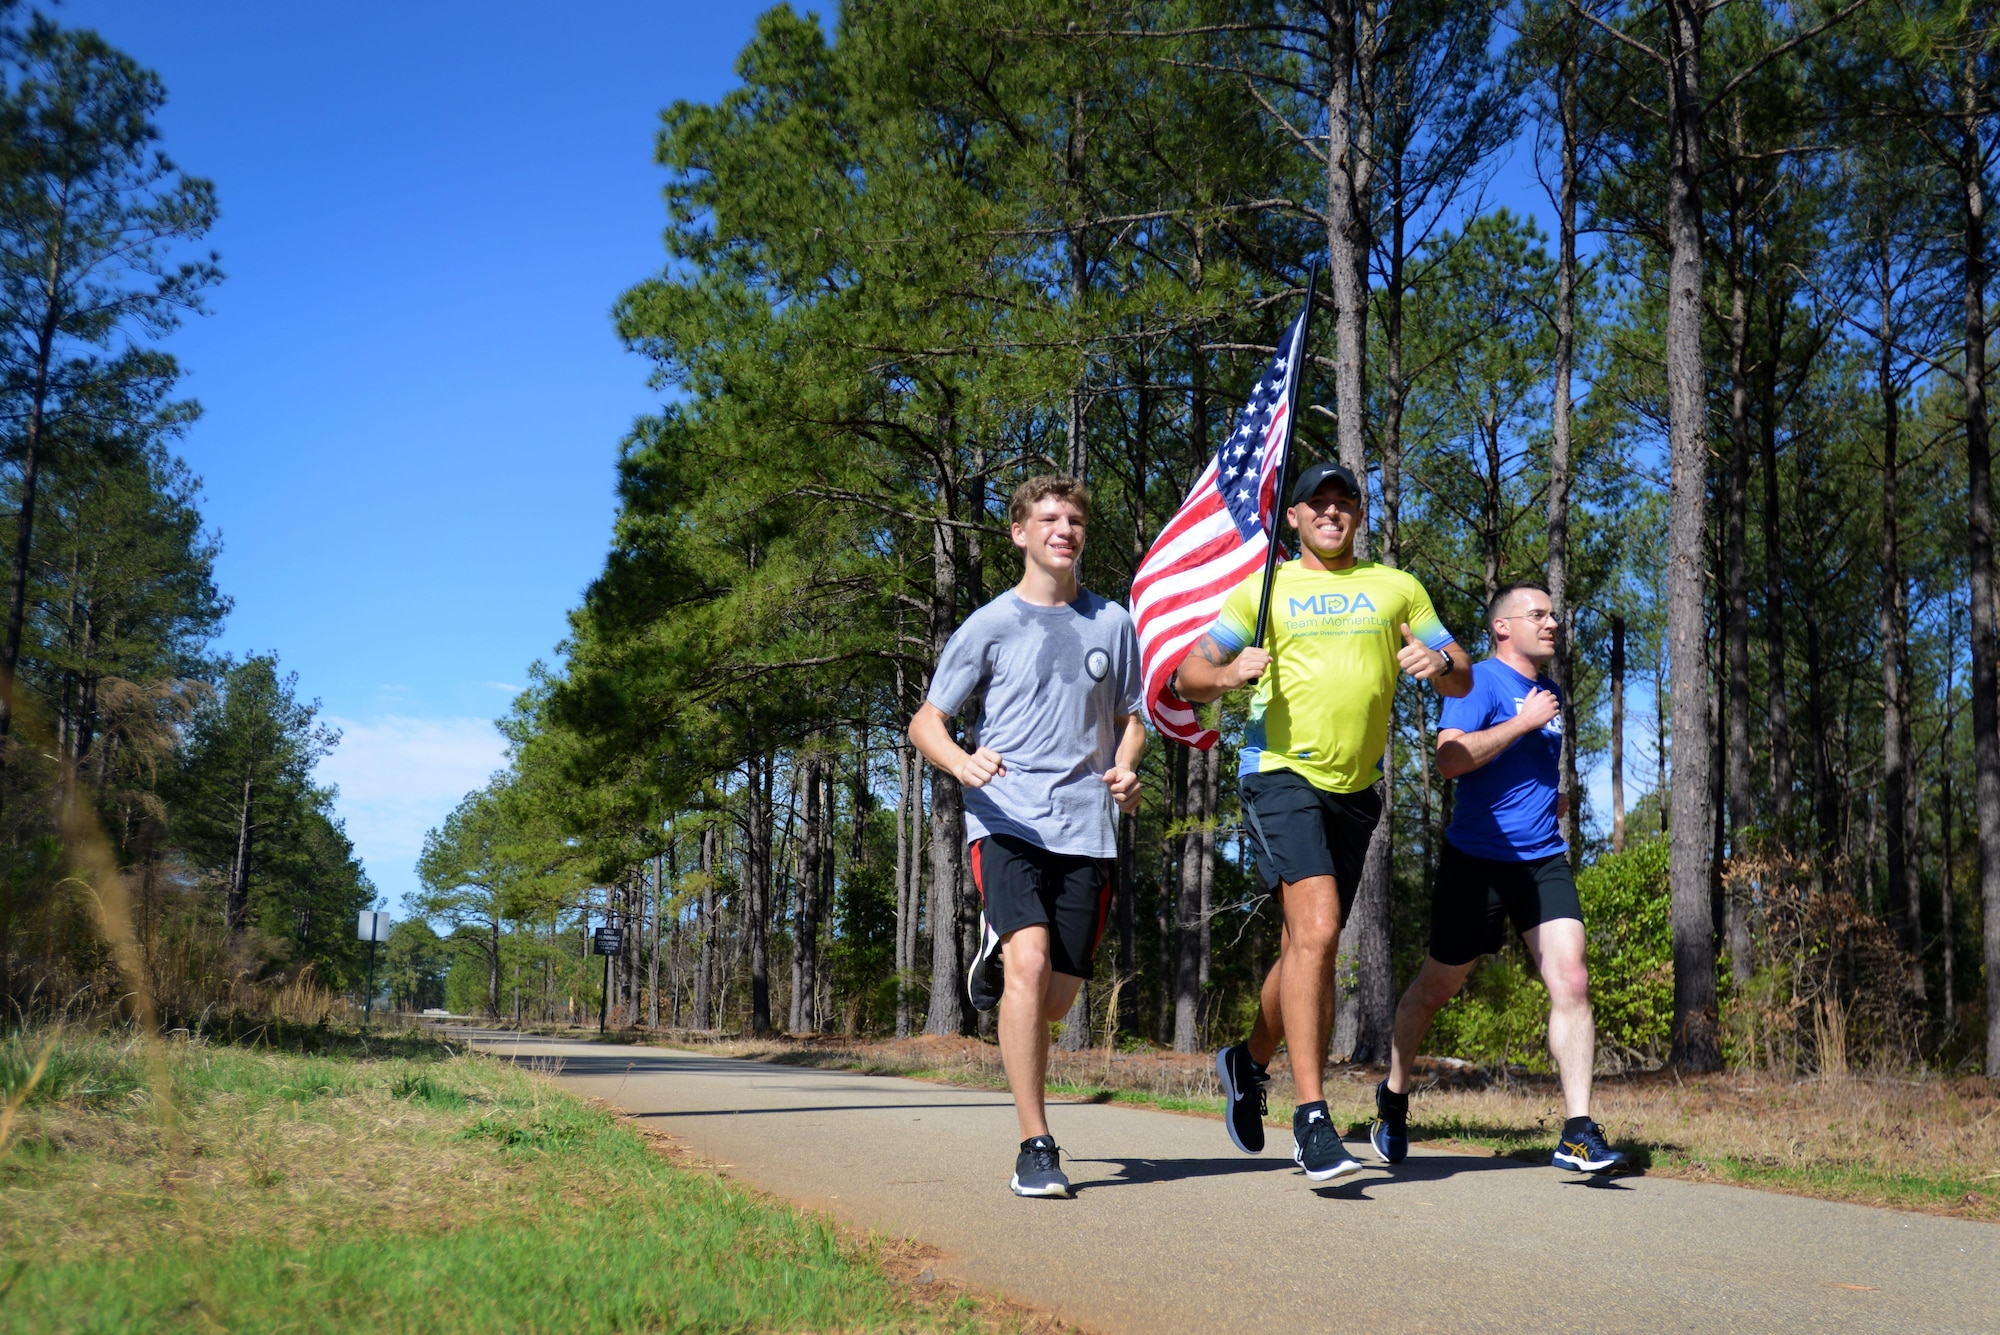 """U.S. Air Force Senior Airman Michael Hall, 20th Aerospace Medicine Squadron flight and operation medical technician, center, runs alongside two other participants in a 5K at Shaw Air Force Base, S.C., Feb. 25, 2017. The Muscular Dystrophy Association chose Hall to represent them in the 2017 Boston Marathon on """"Team Momentum,"""" a group that encourages its members to dedicate their miles to individuals with muscular dystrophy, amyotrophic lateral sclerosis (also known as Lou Gehrig's disease) and other life-threatening diseases. Hall runs for his sister, Danielle, who has lived with muscular dystrophy for 27 years, and his brother DJ, who passed away from the disease when he was 19 months old. (U.S. Air Force photo by Airman 1st Class Kelsey Tucker)"""